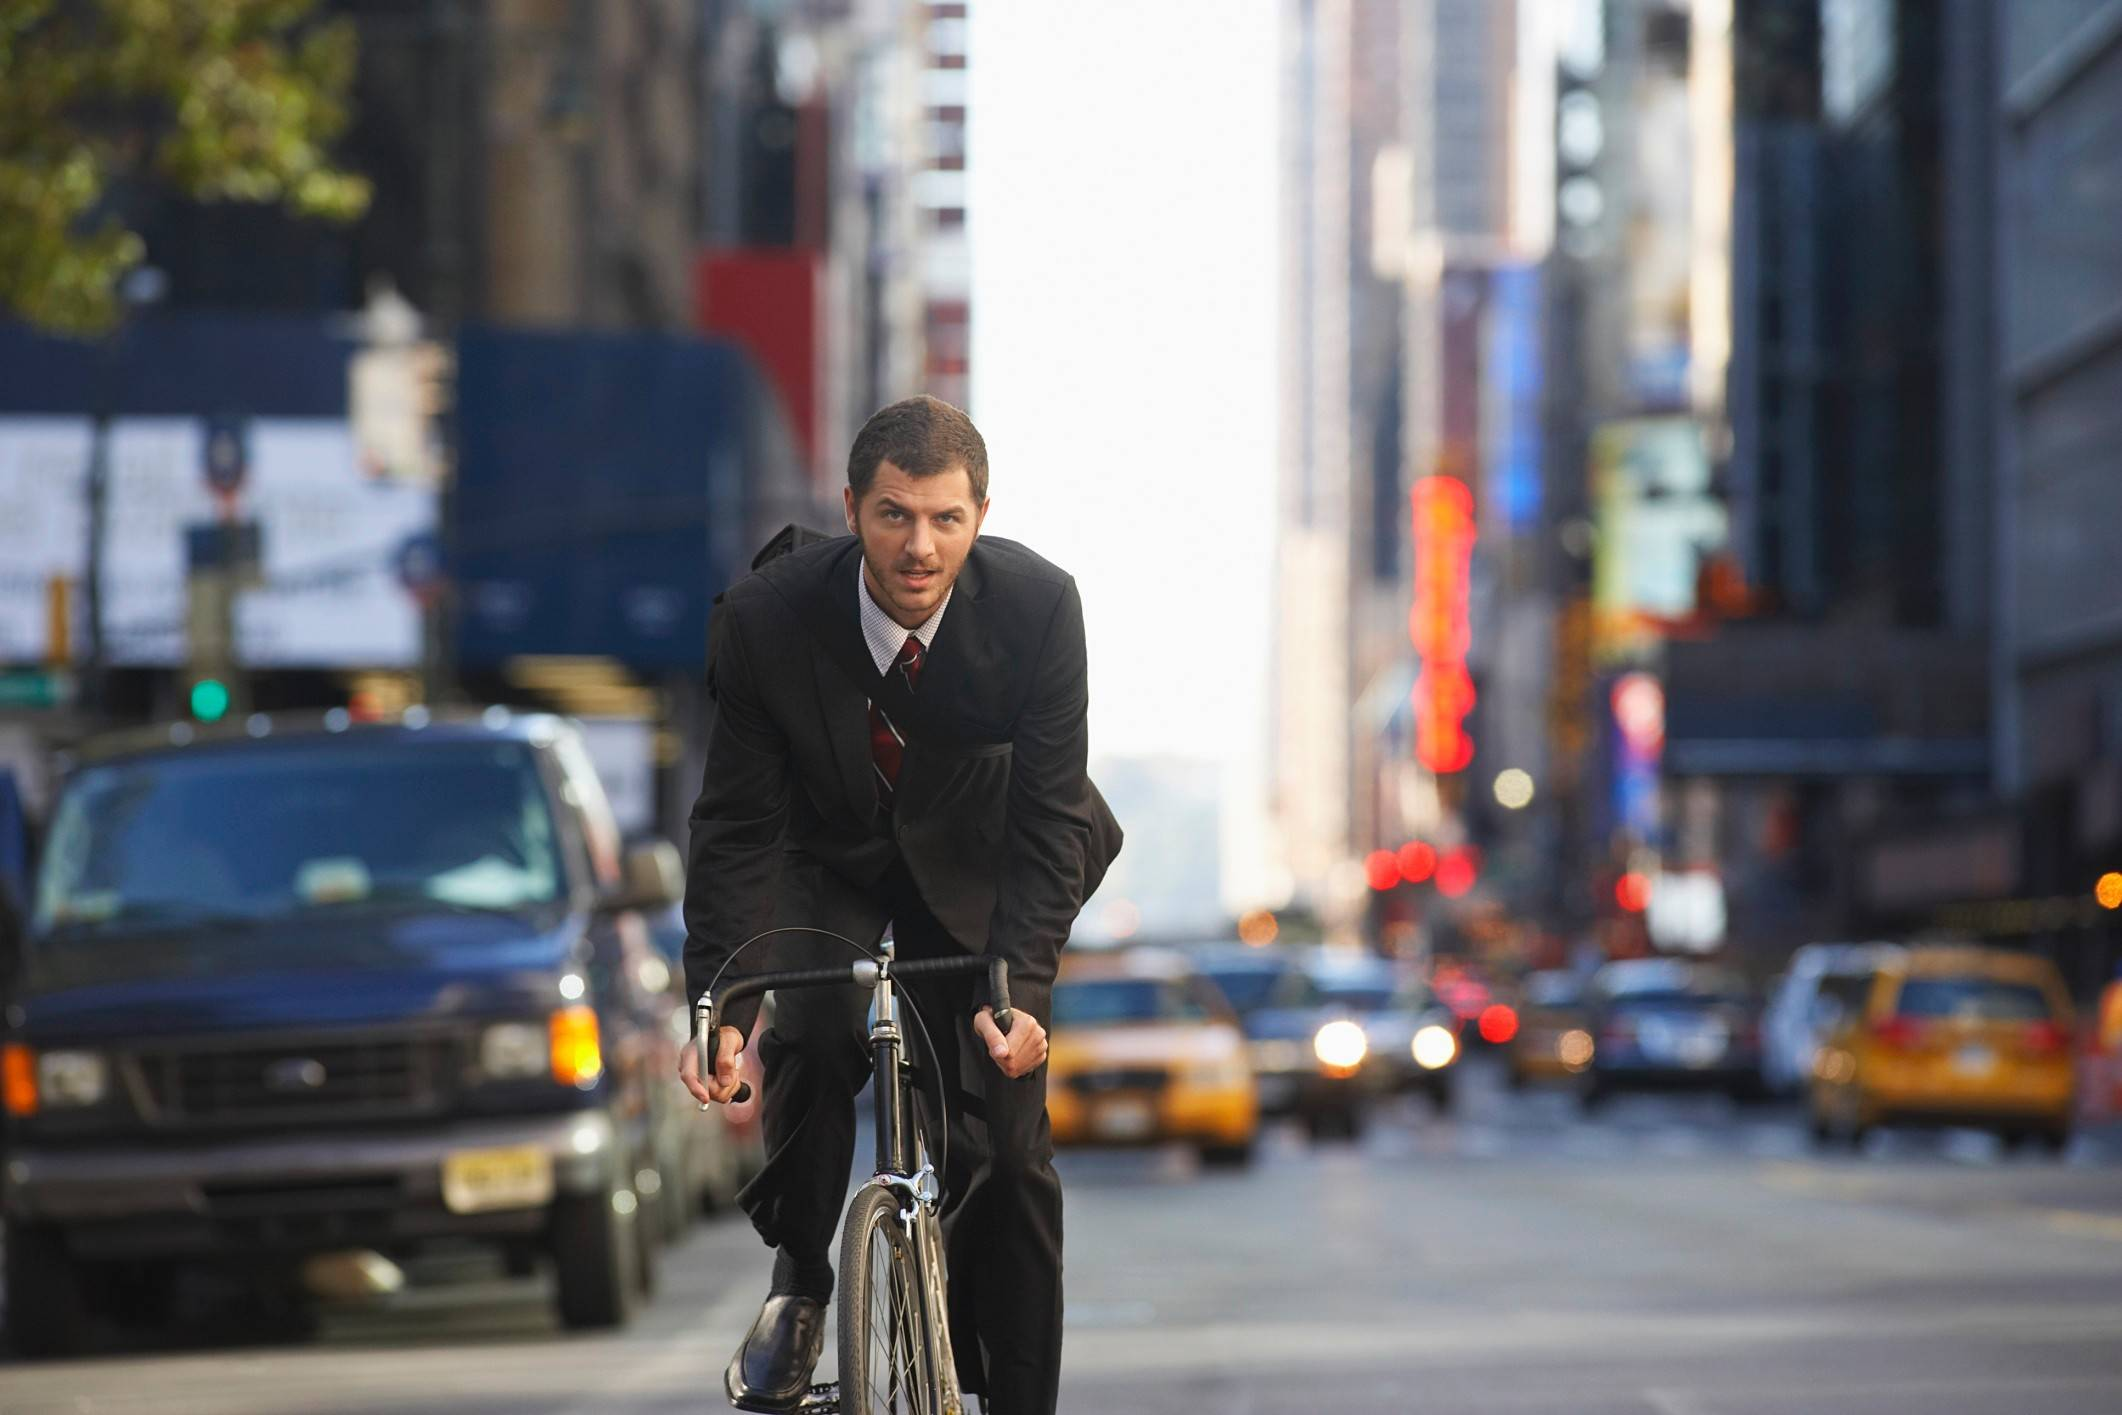 The proportion of Americans who bike to work quadrupled from 2000 to 2015, according to census data.